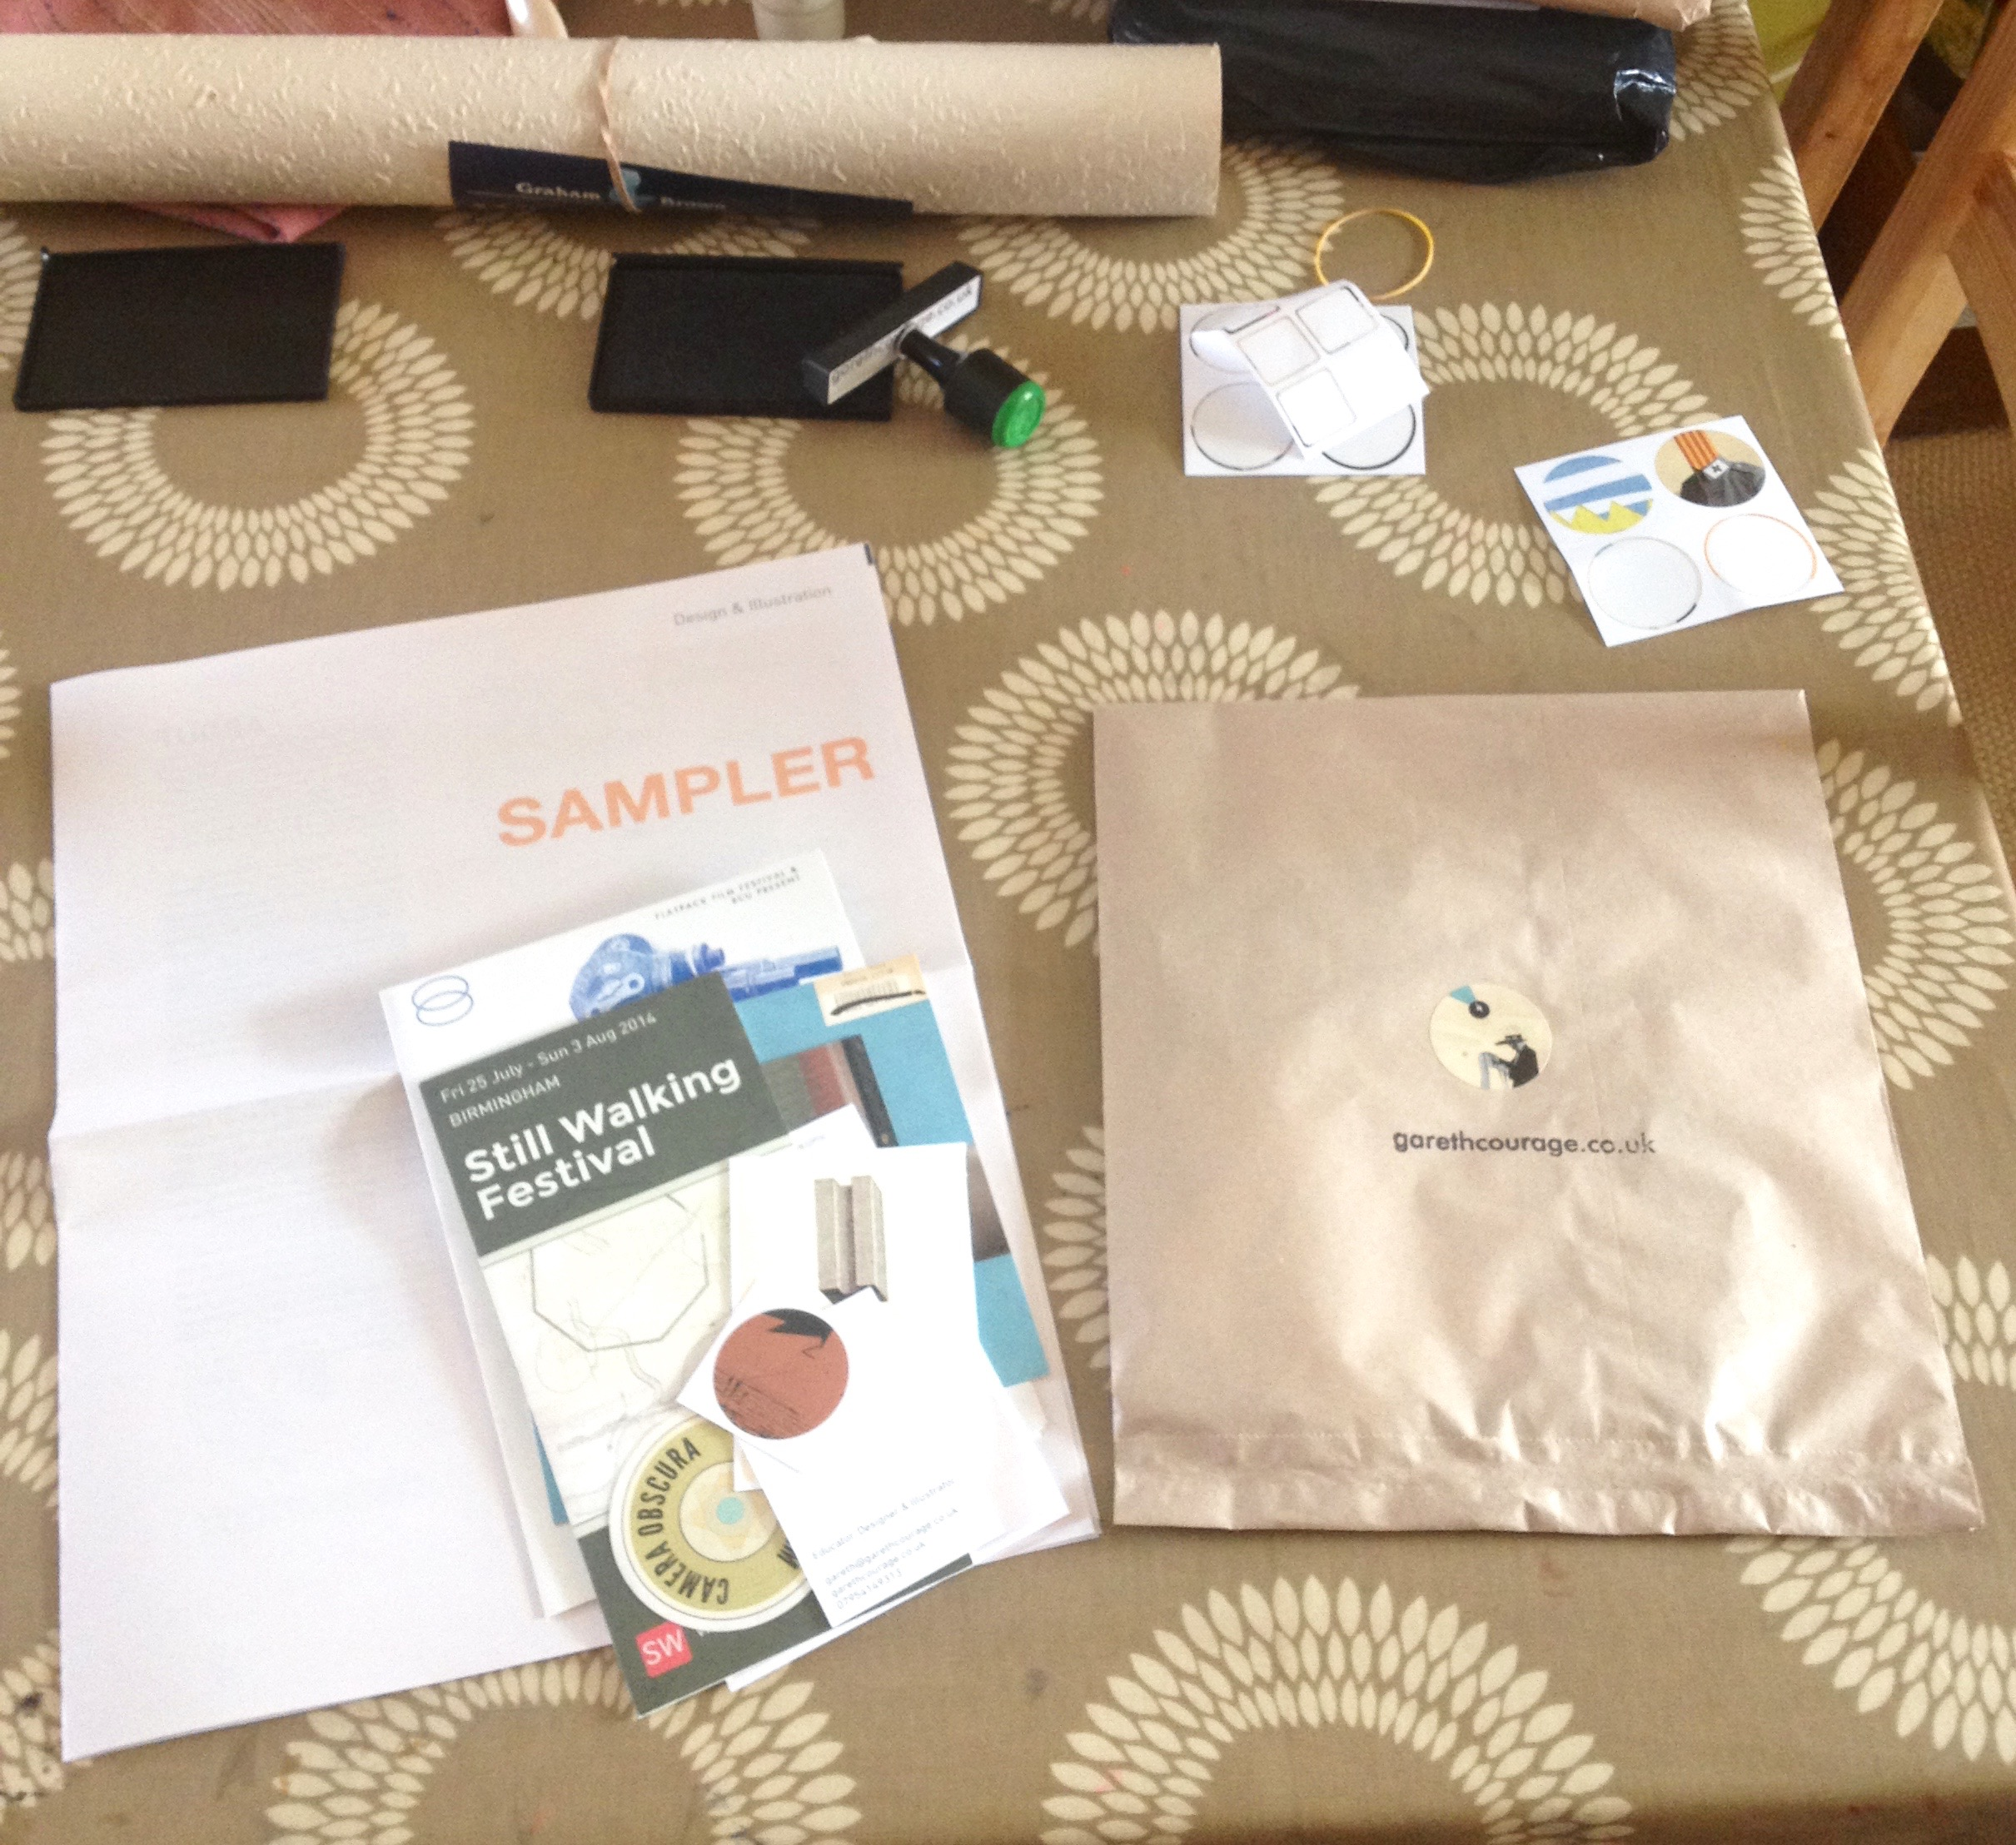 The bags under construction - this one has a risographed programme from Swipeside in it.